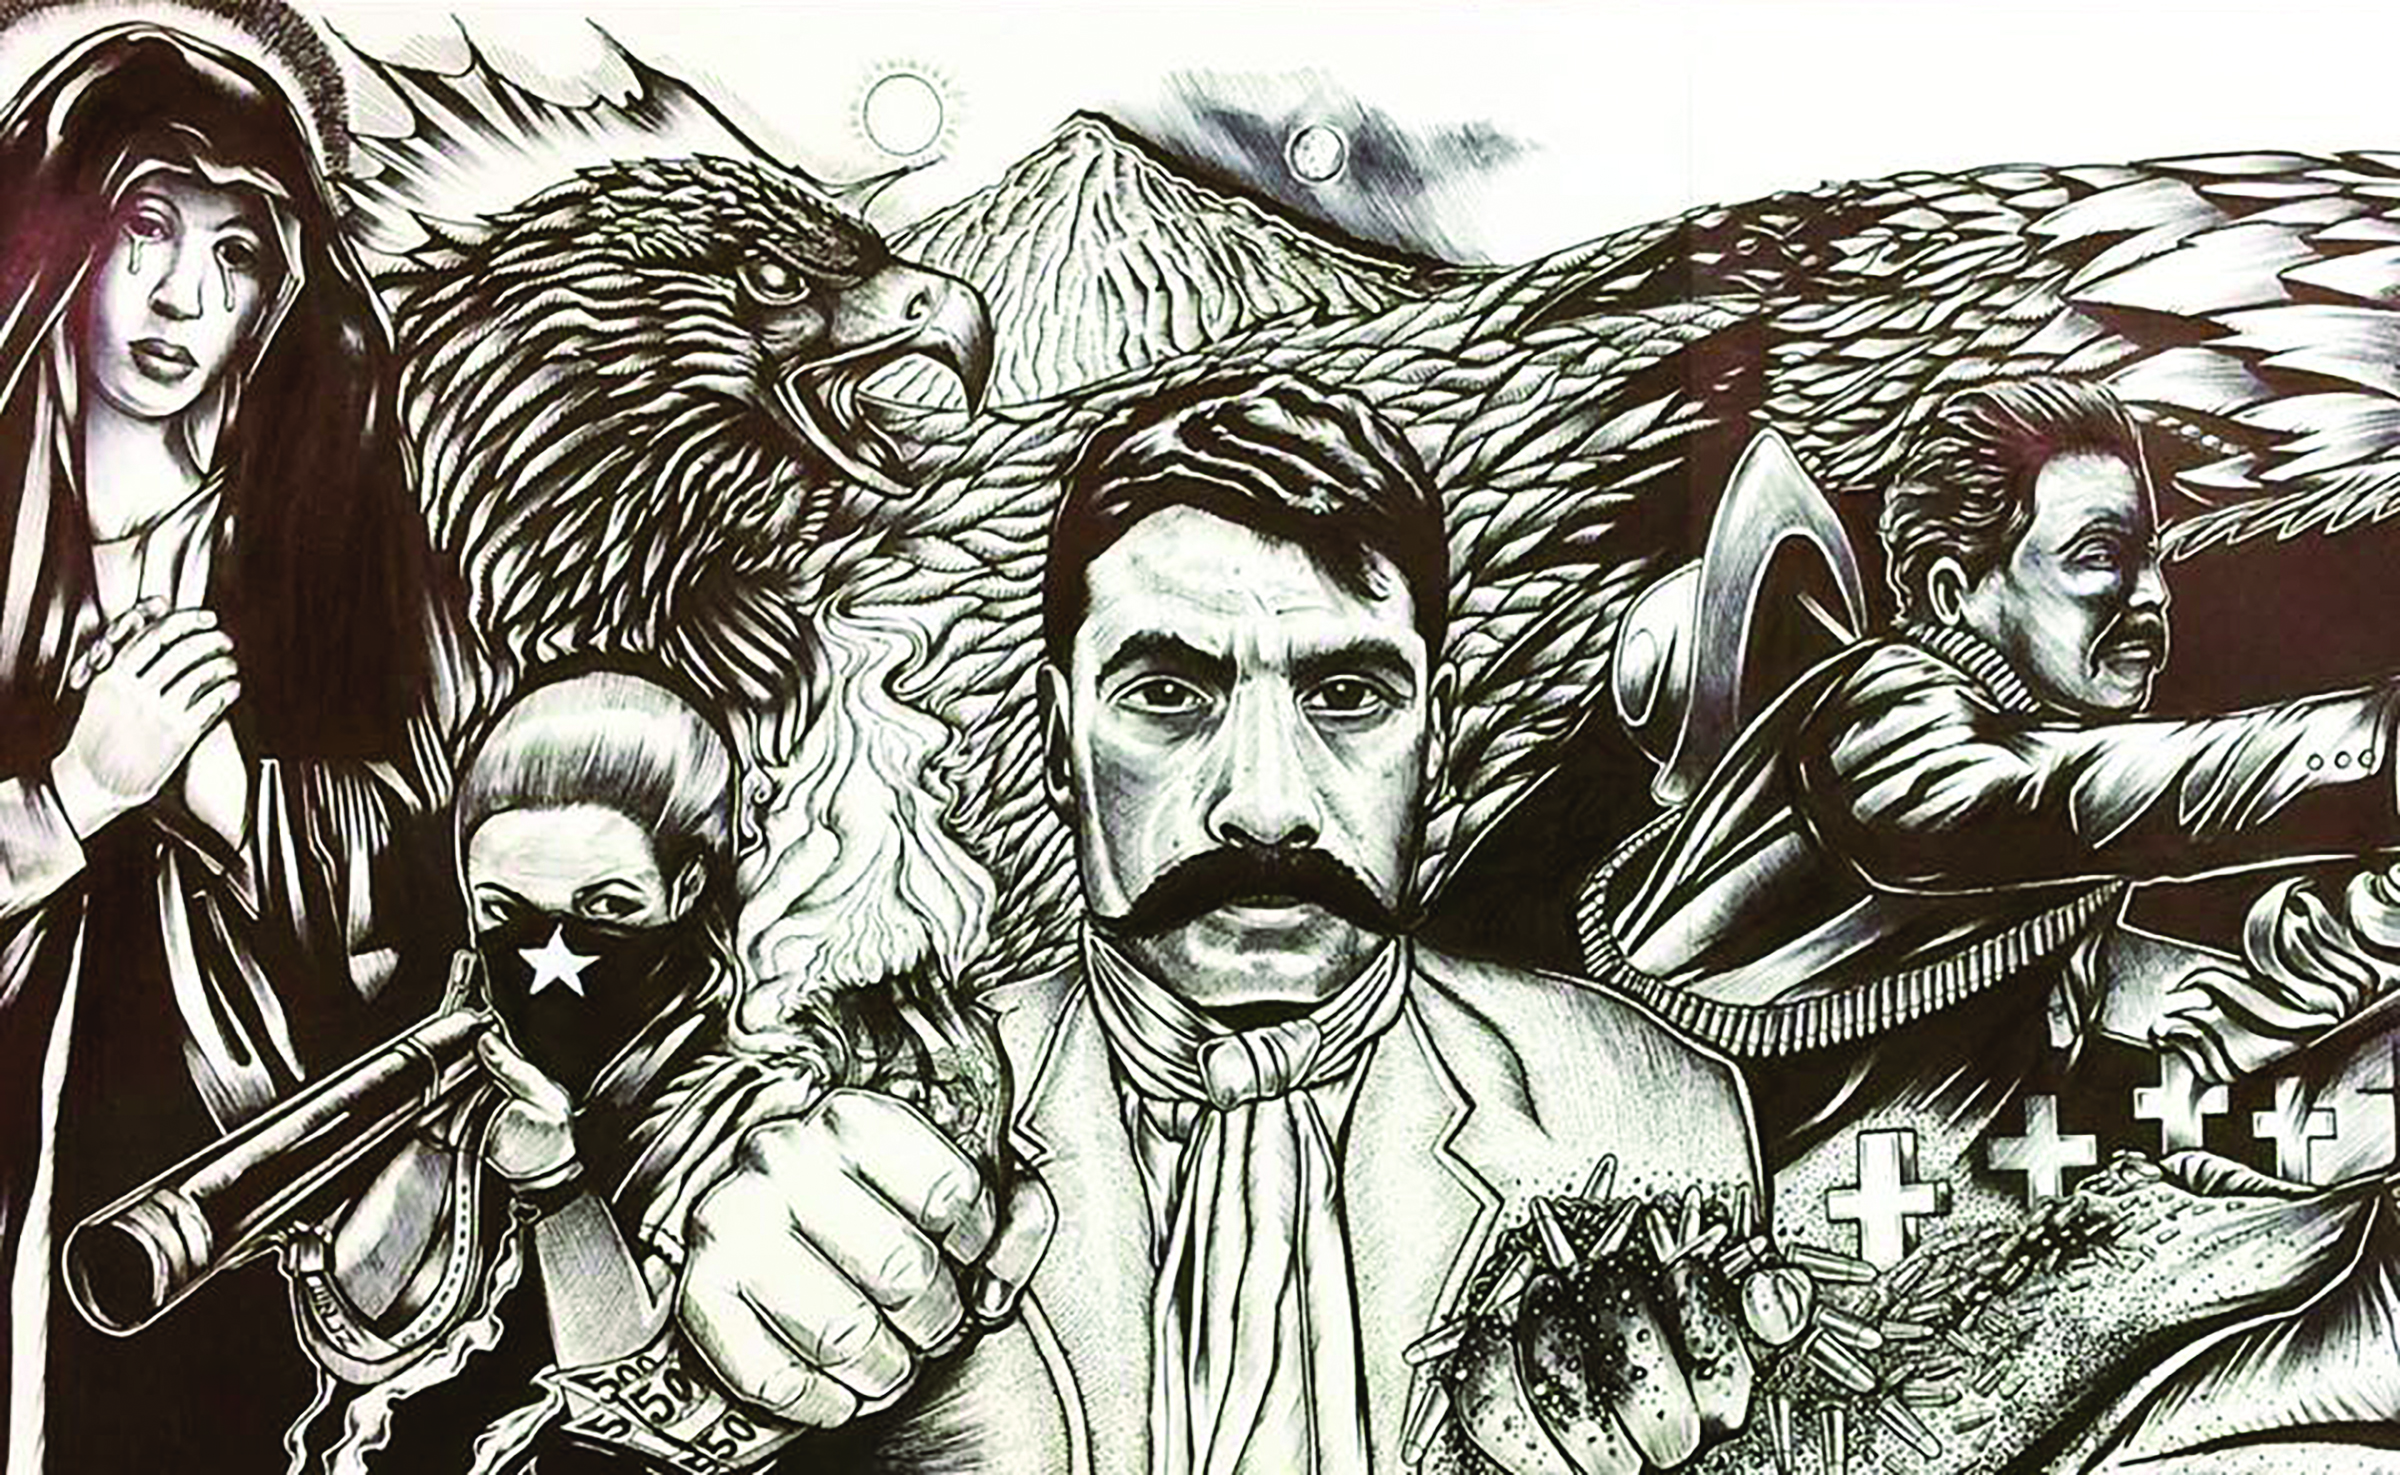 Image of artwork by Josiah Lee Lopez, depicting heroes in the struggle for Latinx equality